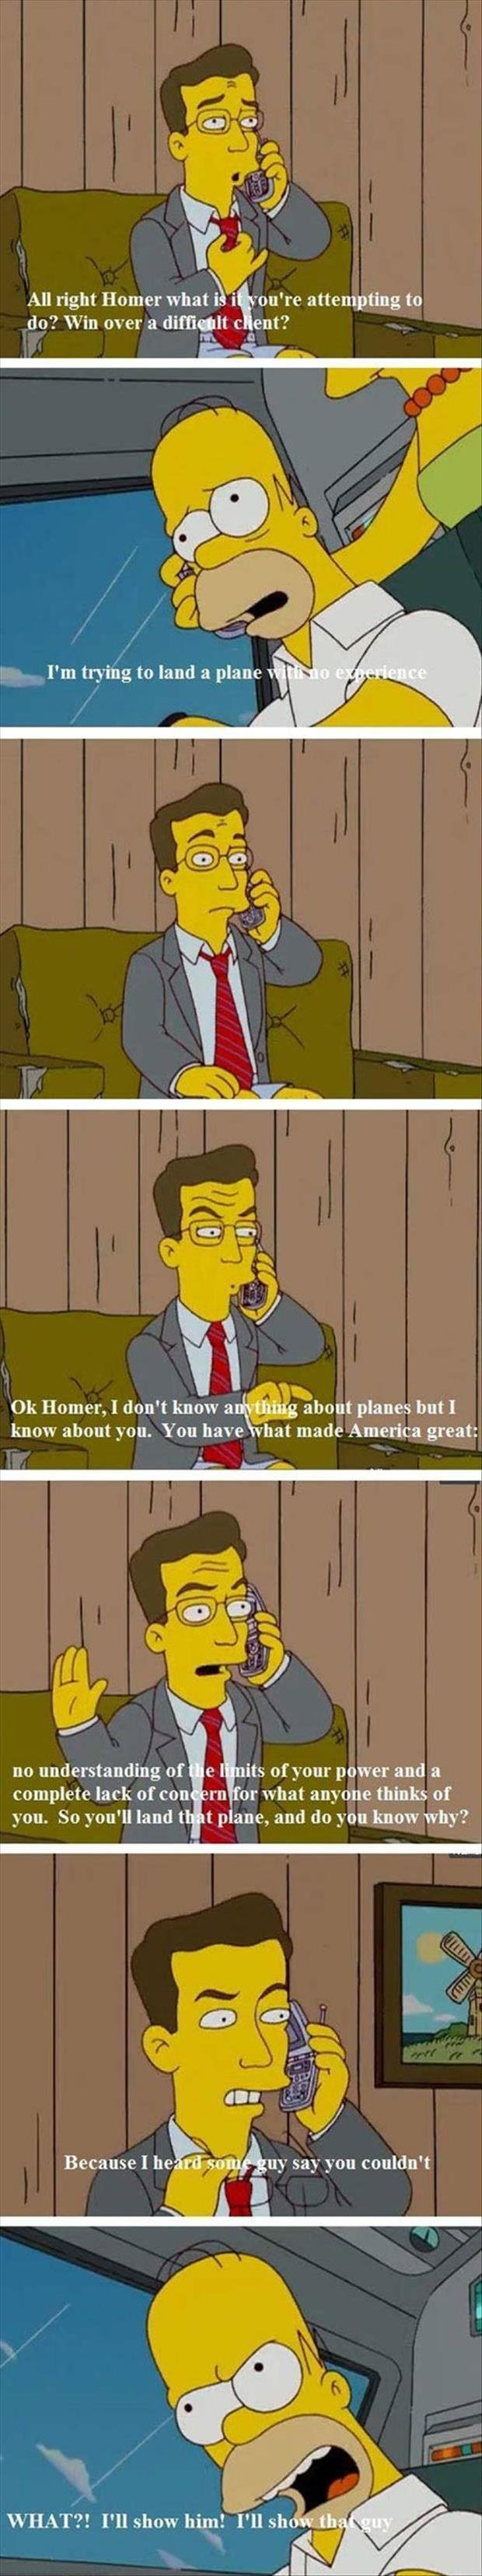 """Colbert 6. source: simpsons. re attempting to do? Win over a dime"""" Homer, 1 don' t know @ planes but] know about you. You have hat made America great: tir no un"""